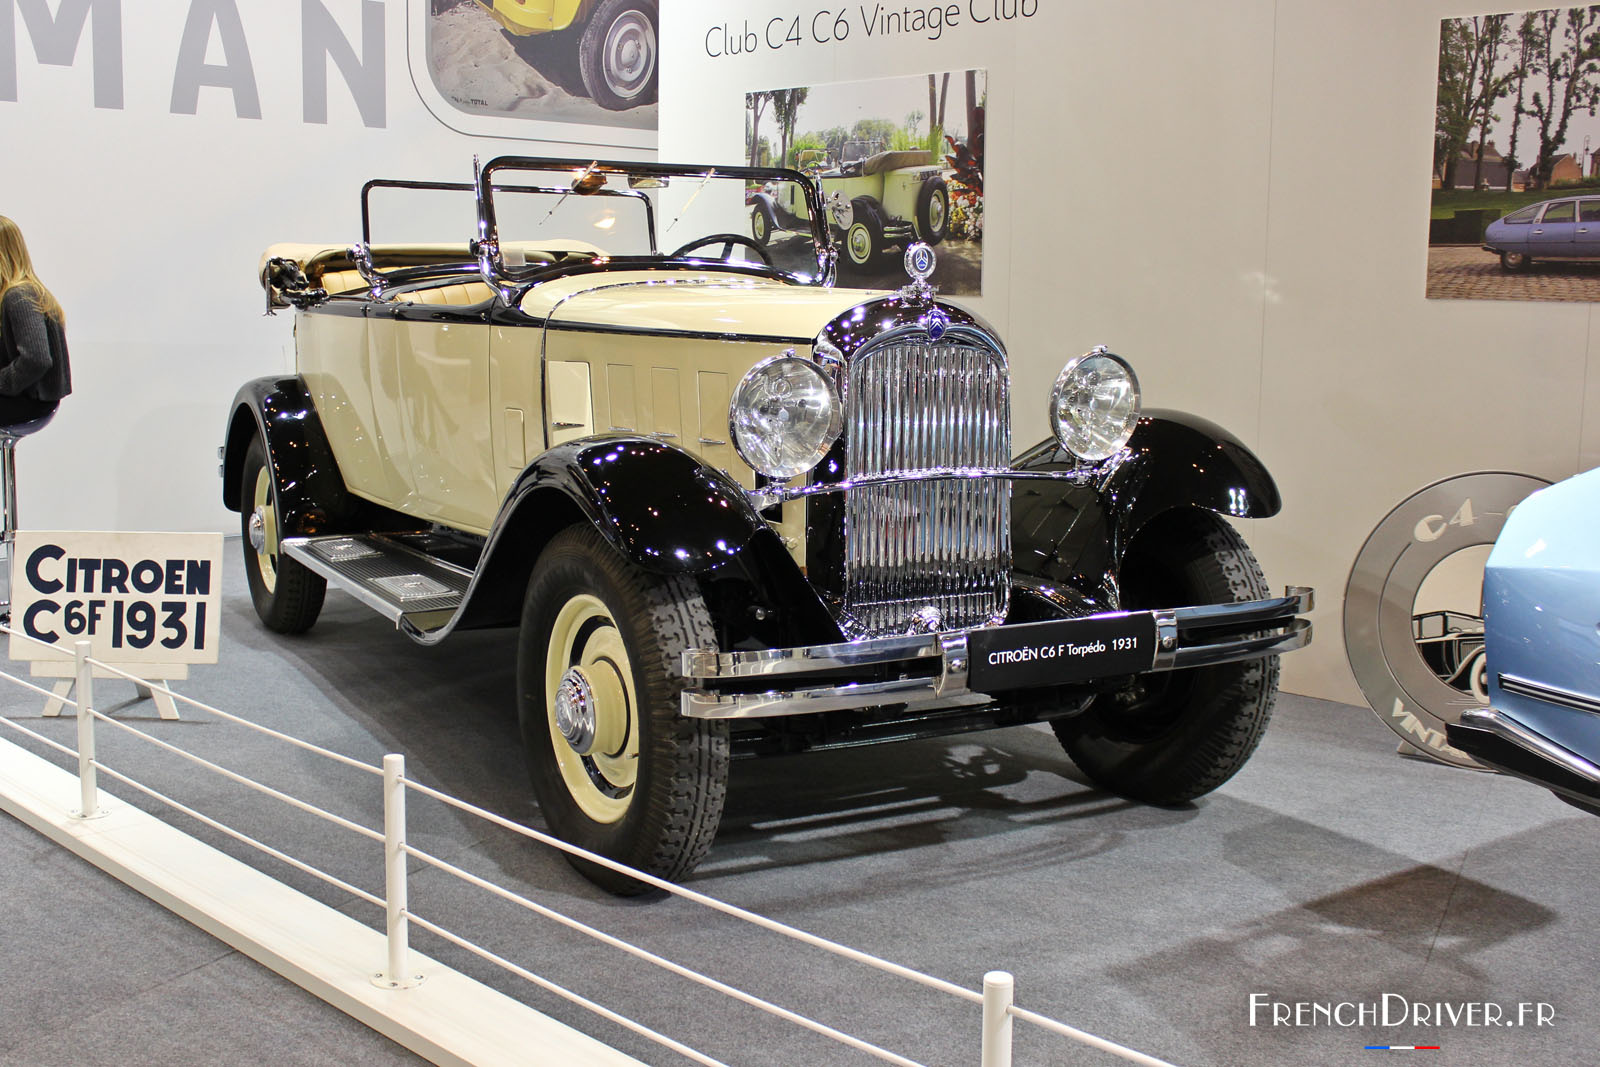 Salon retromobile porte de versailles pau 31 for Porte de versailles salon des vignerons independants 2015